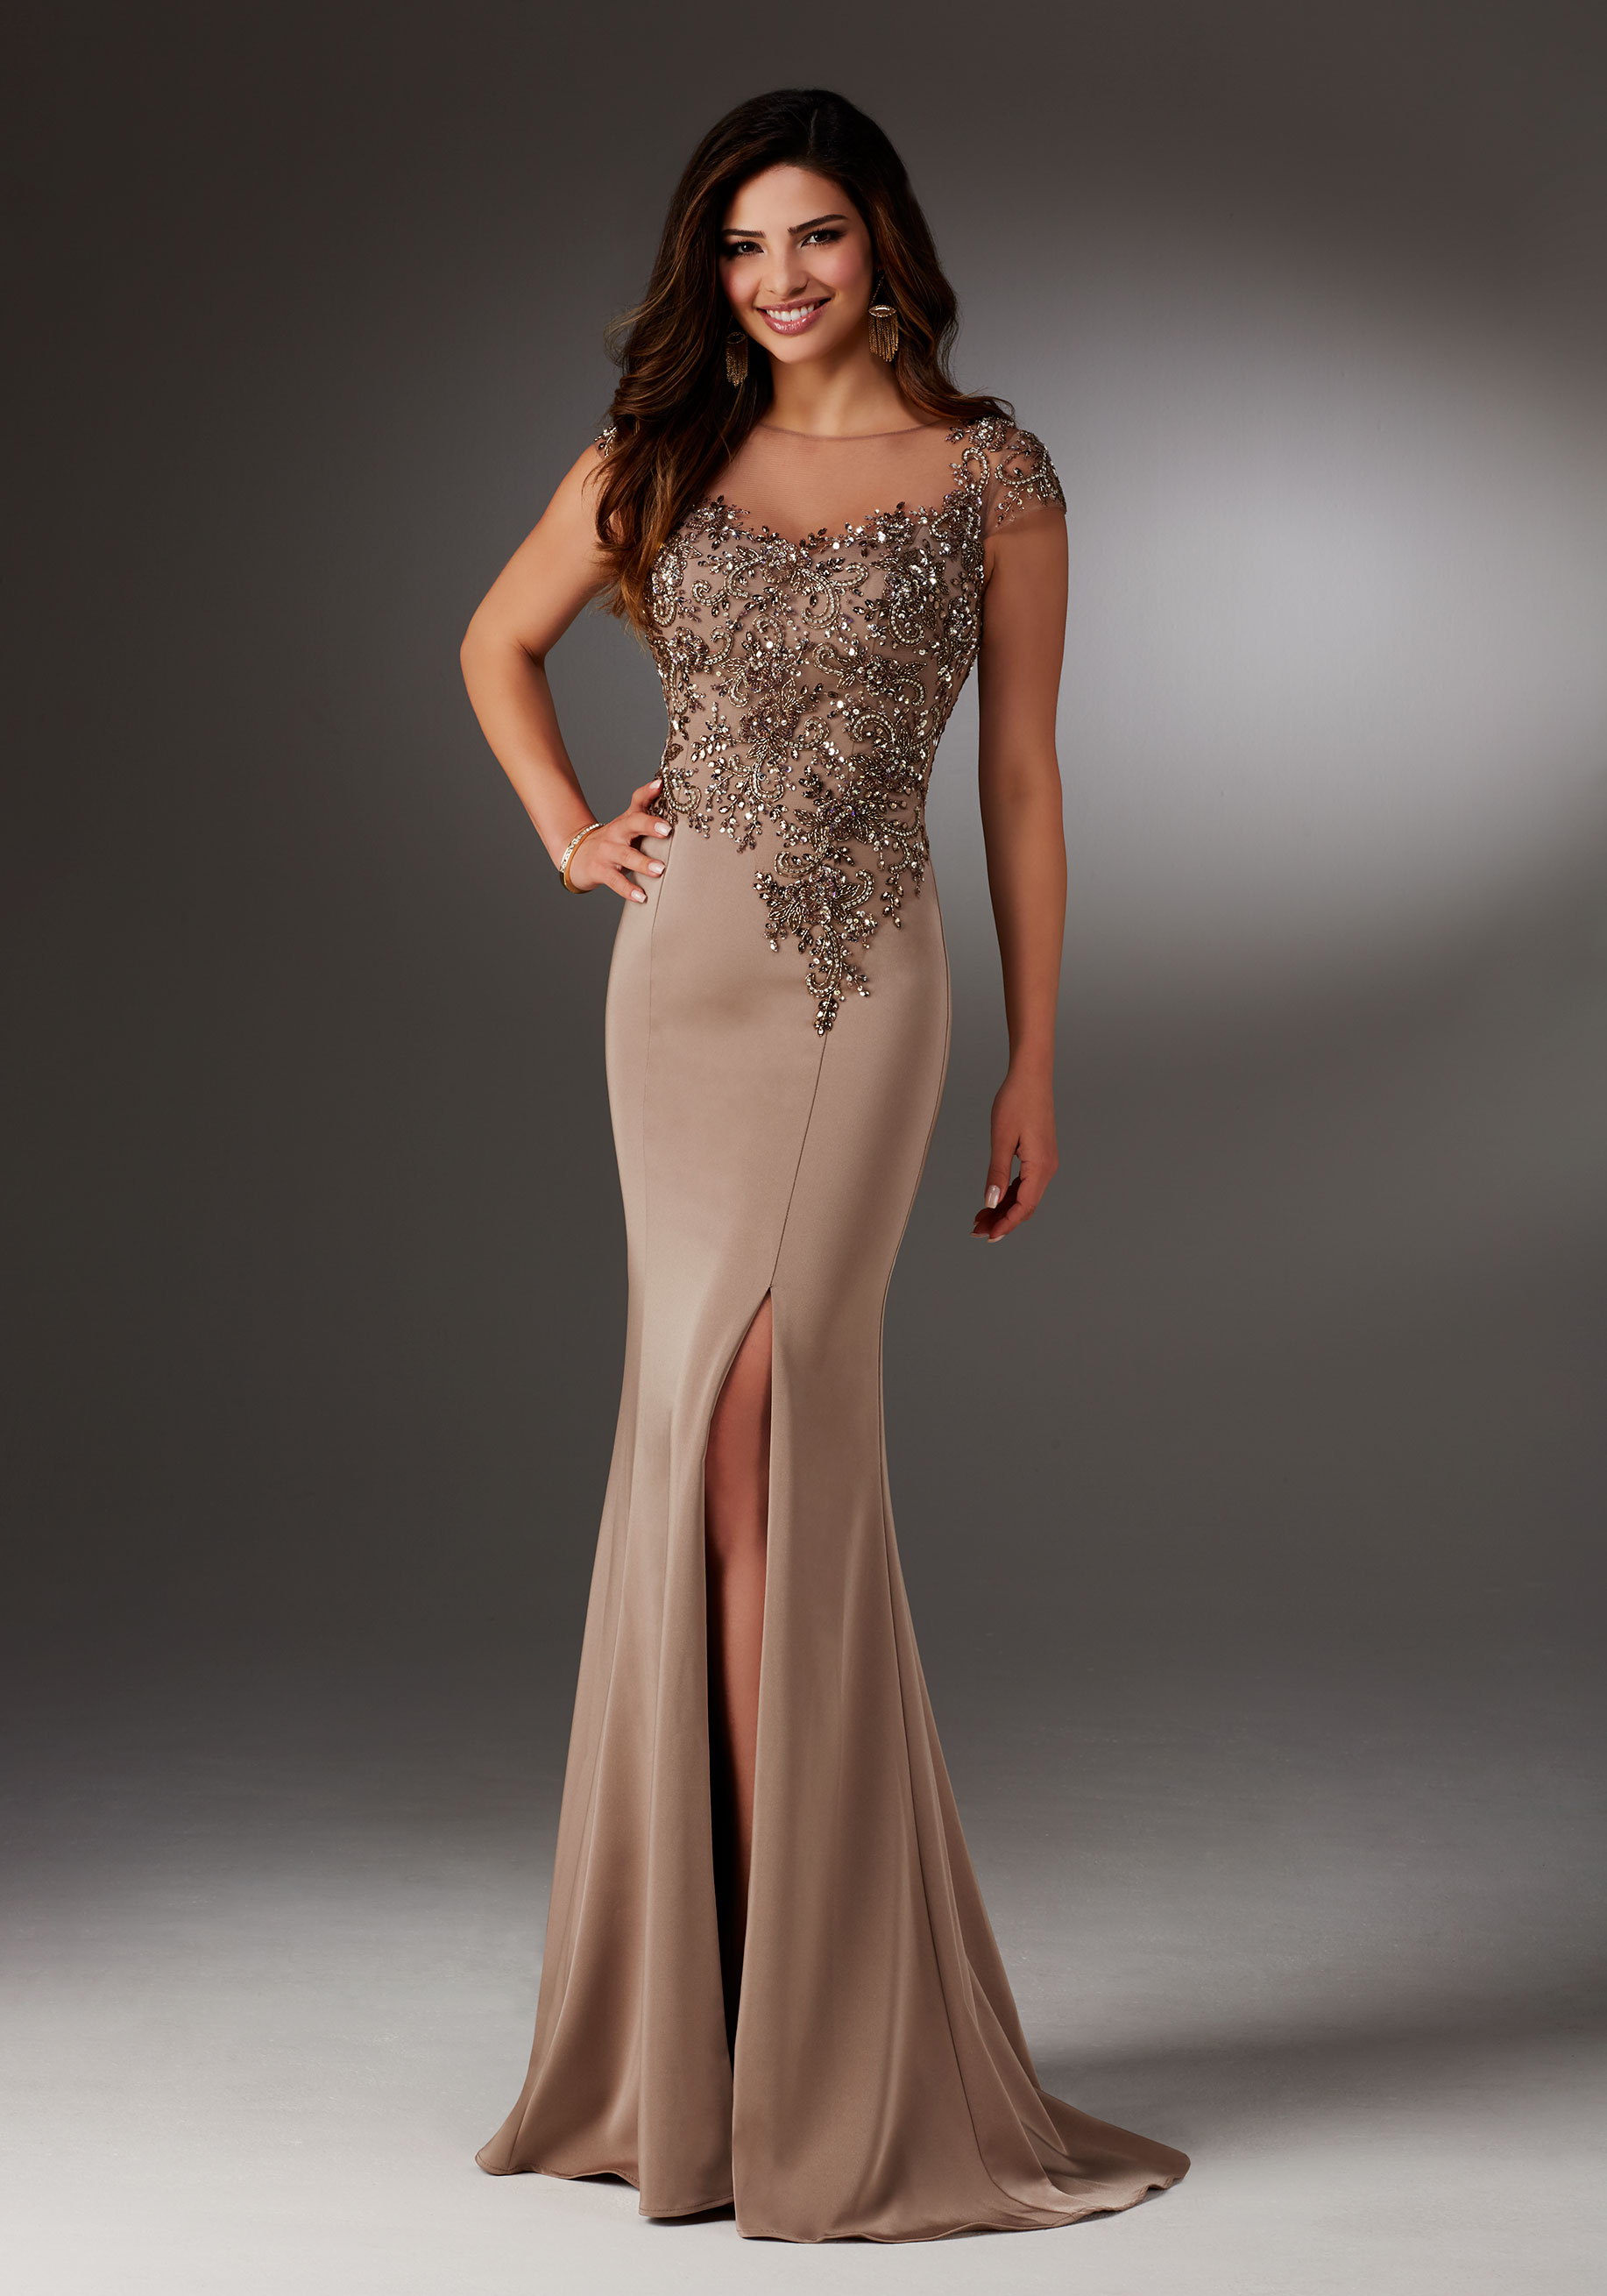 dress evening gown photo - 1